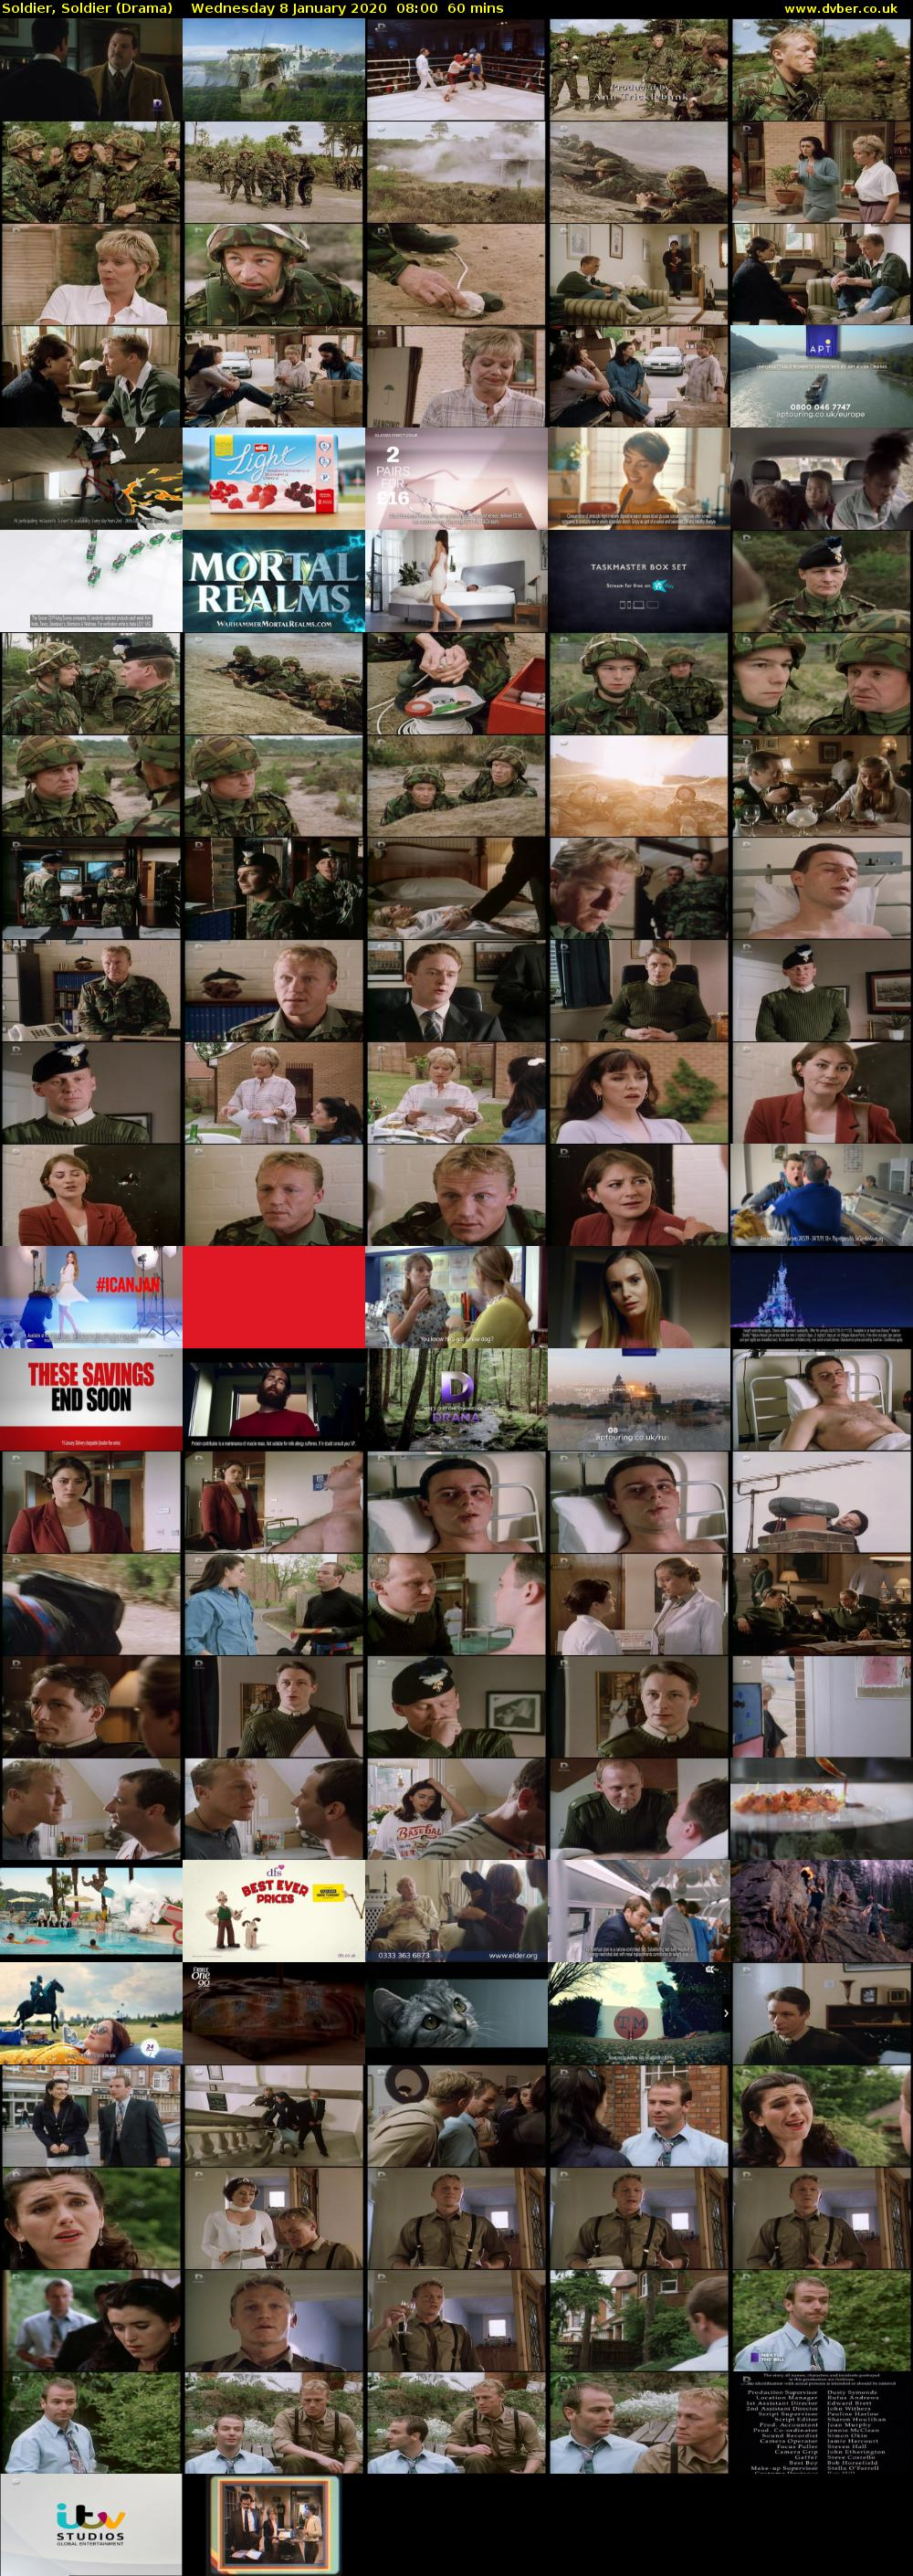 Soldier, Soldier (Drama) Wednesday 8 January 2020 08:00 - 09:00